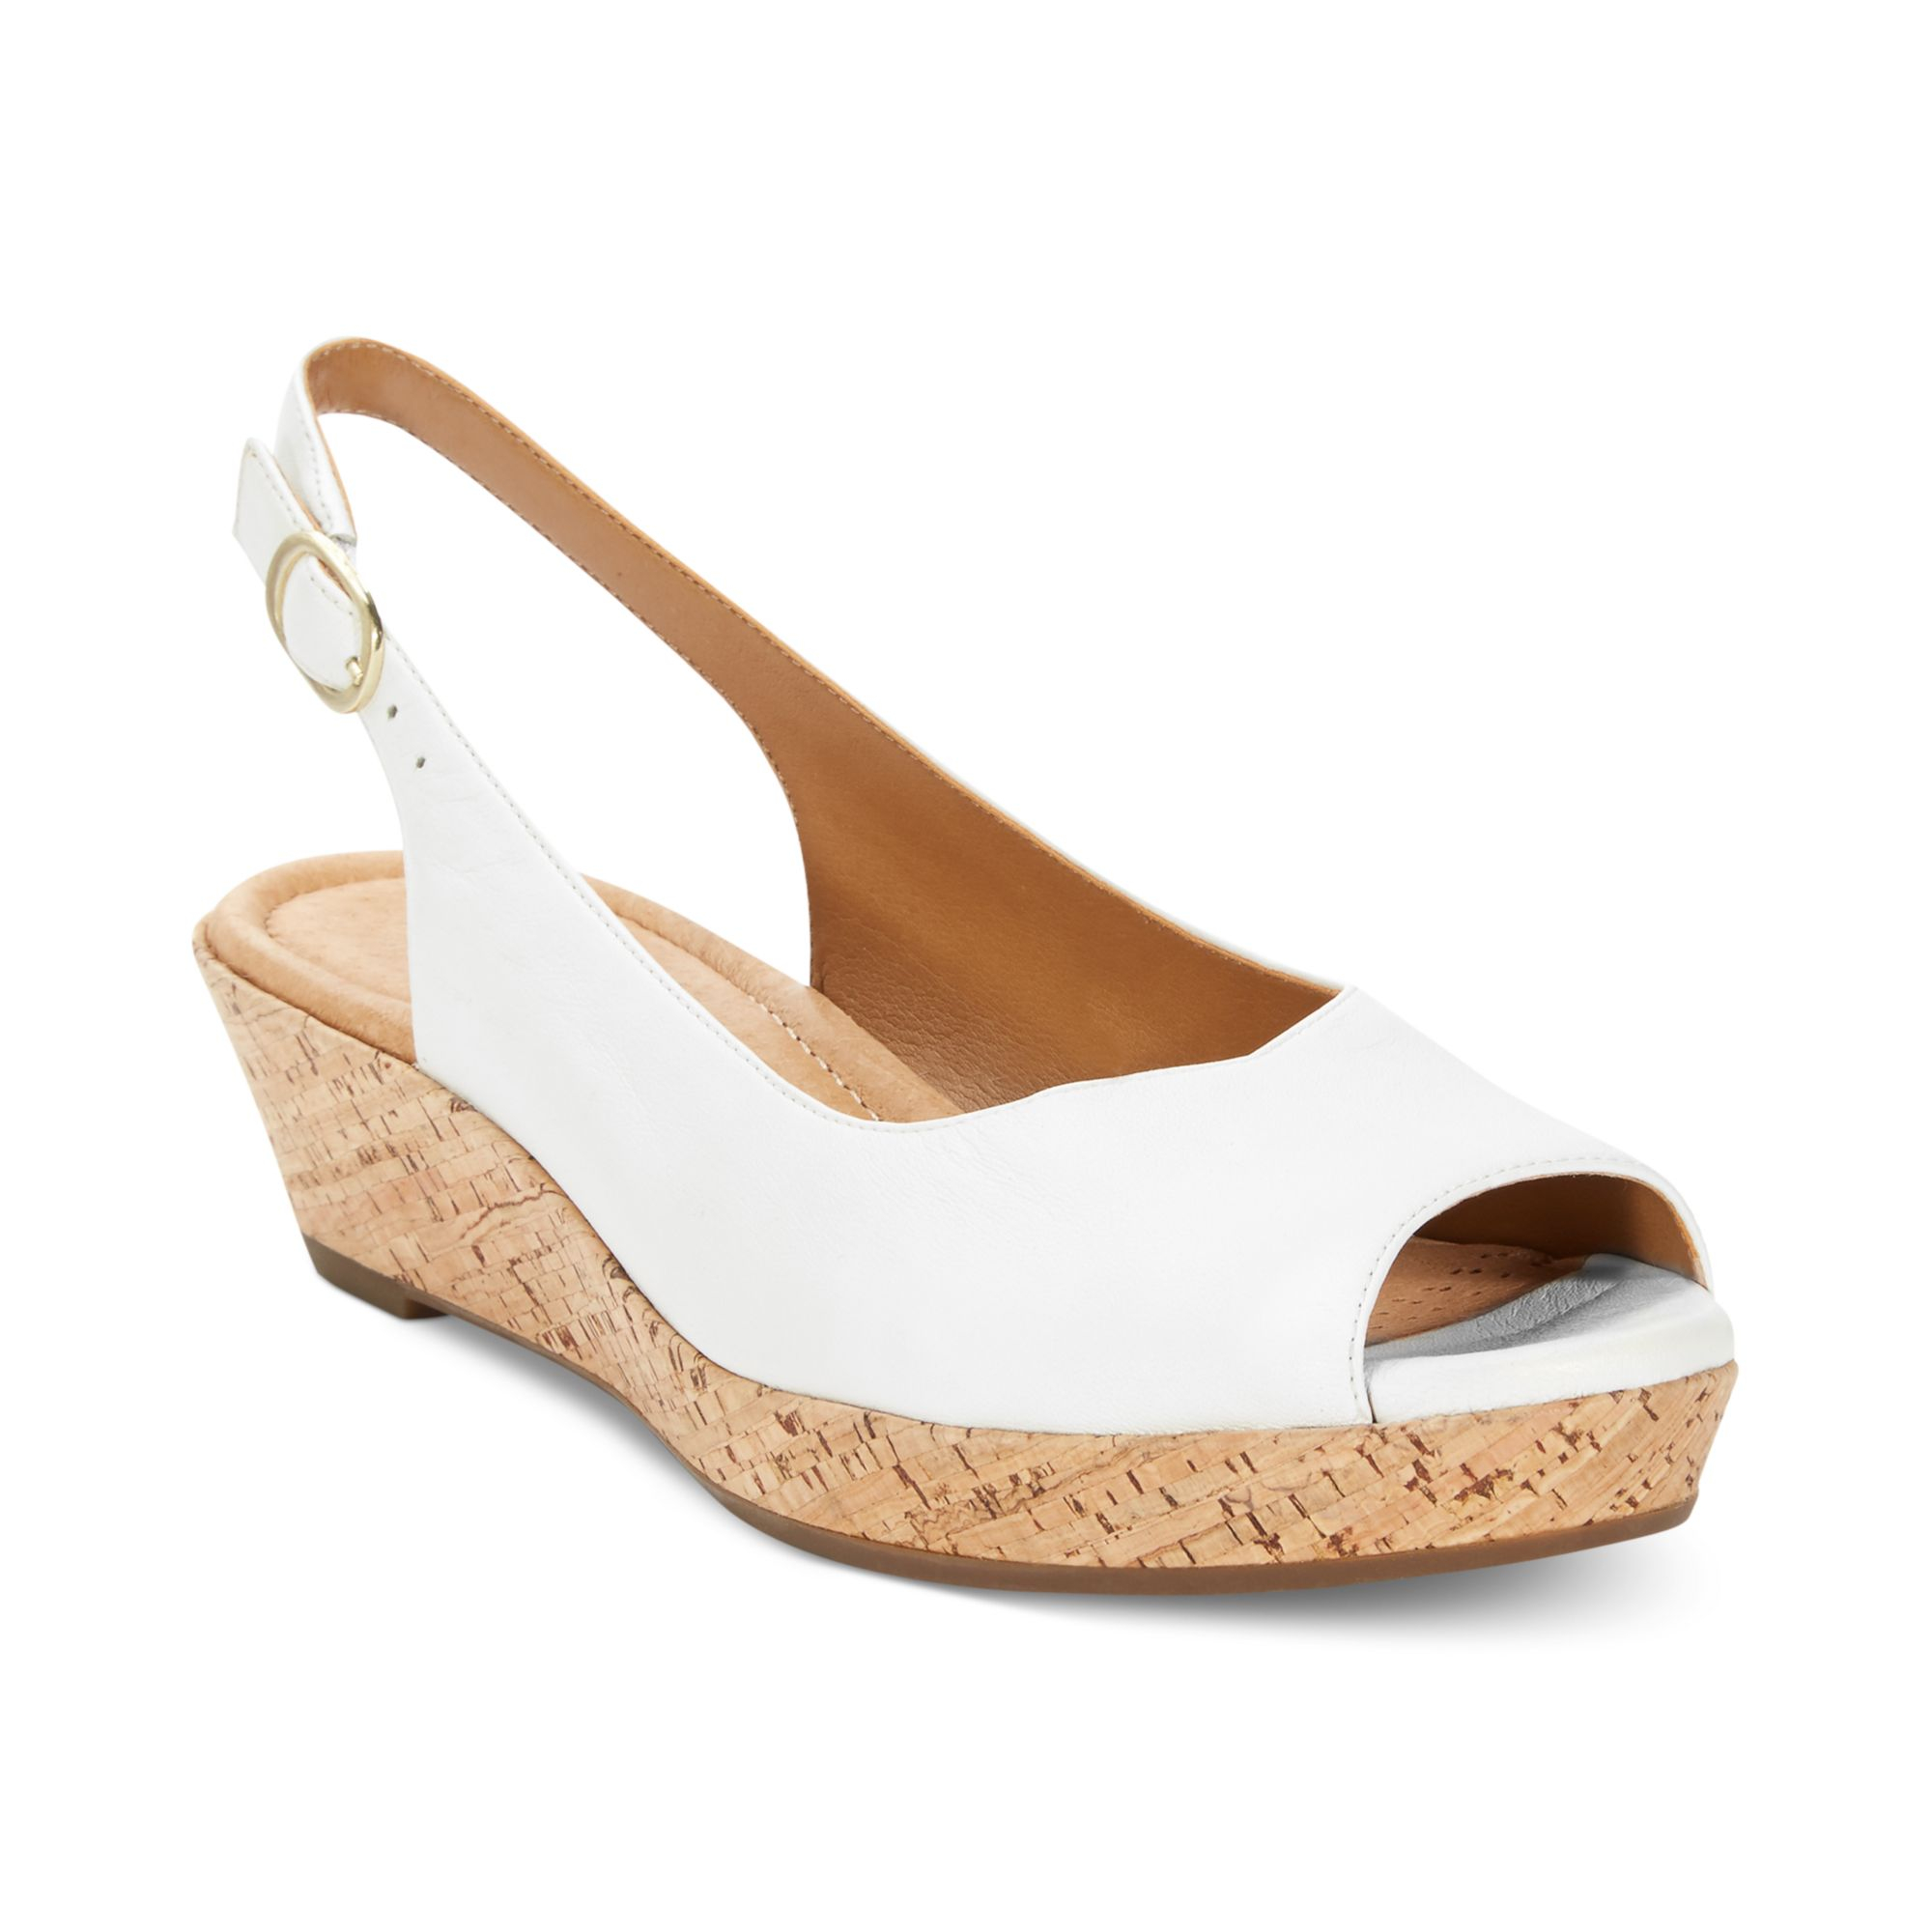 Excellent Lets Take A Moment And Talk About These Marc Fisher Platform Wedge Sandals Ive Contemplated These For Over  You Can Wear It Multiple Ways And Ive Never